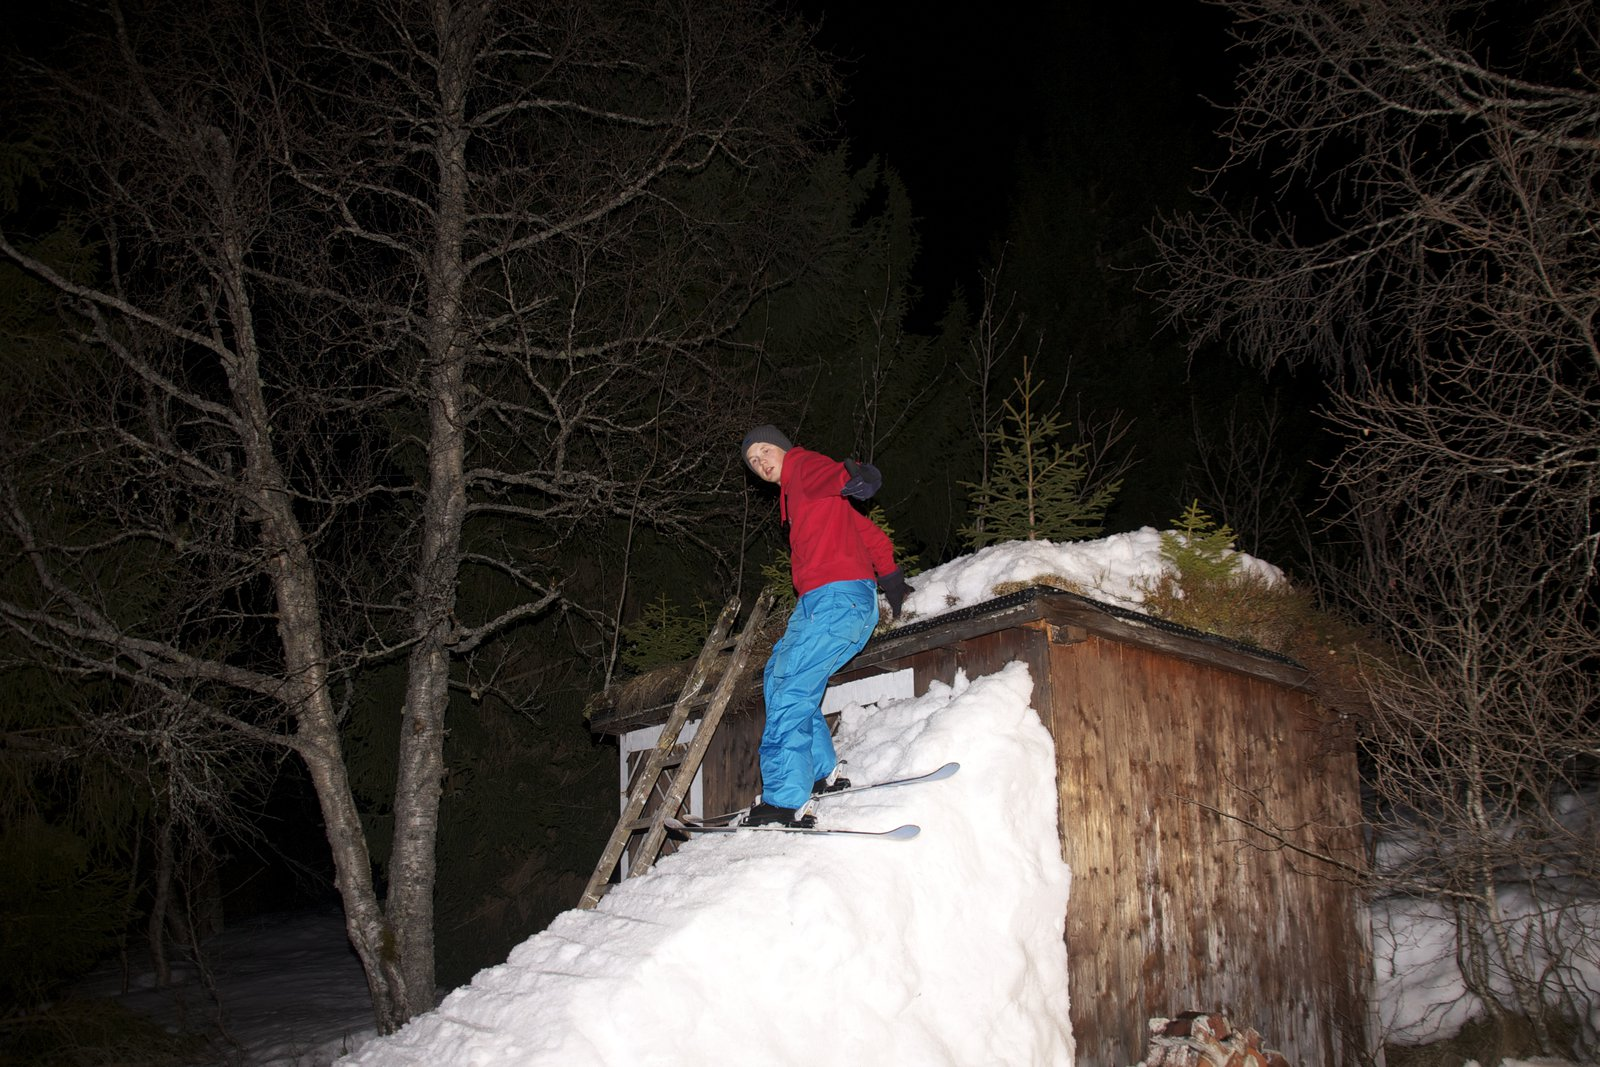 Building the slope